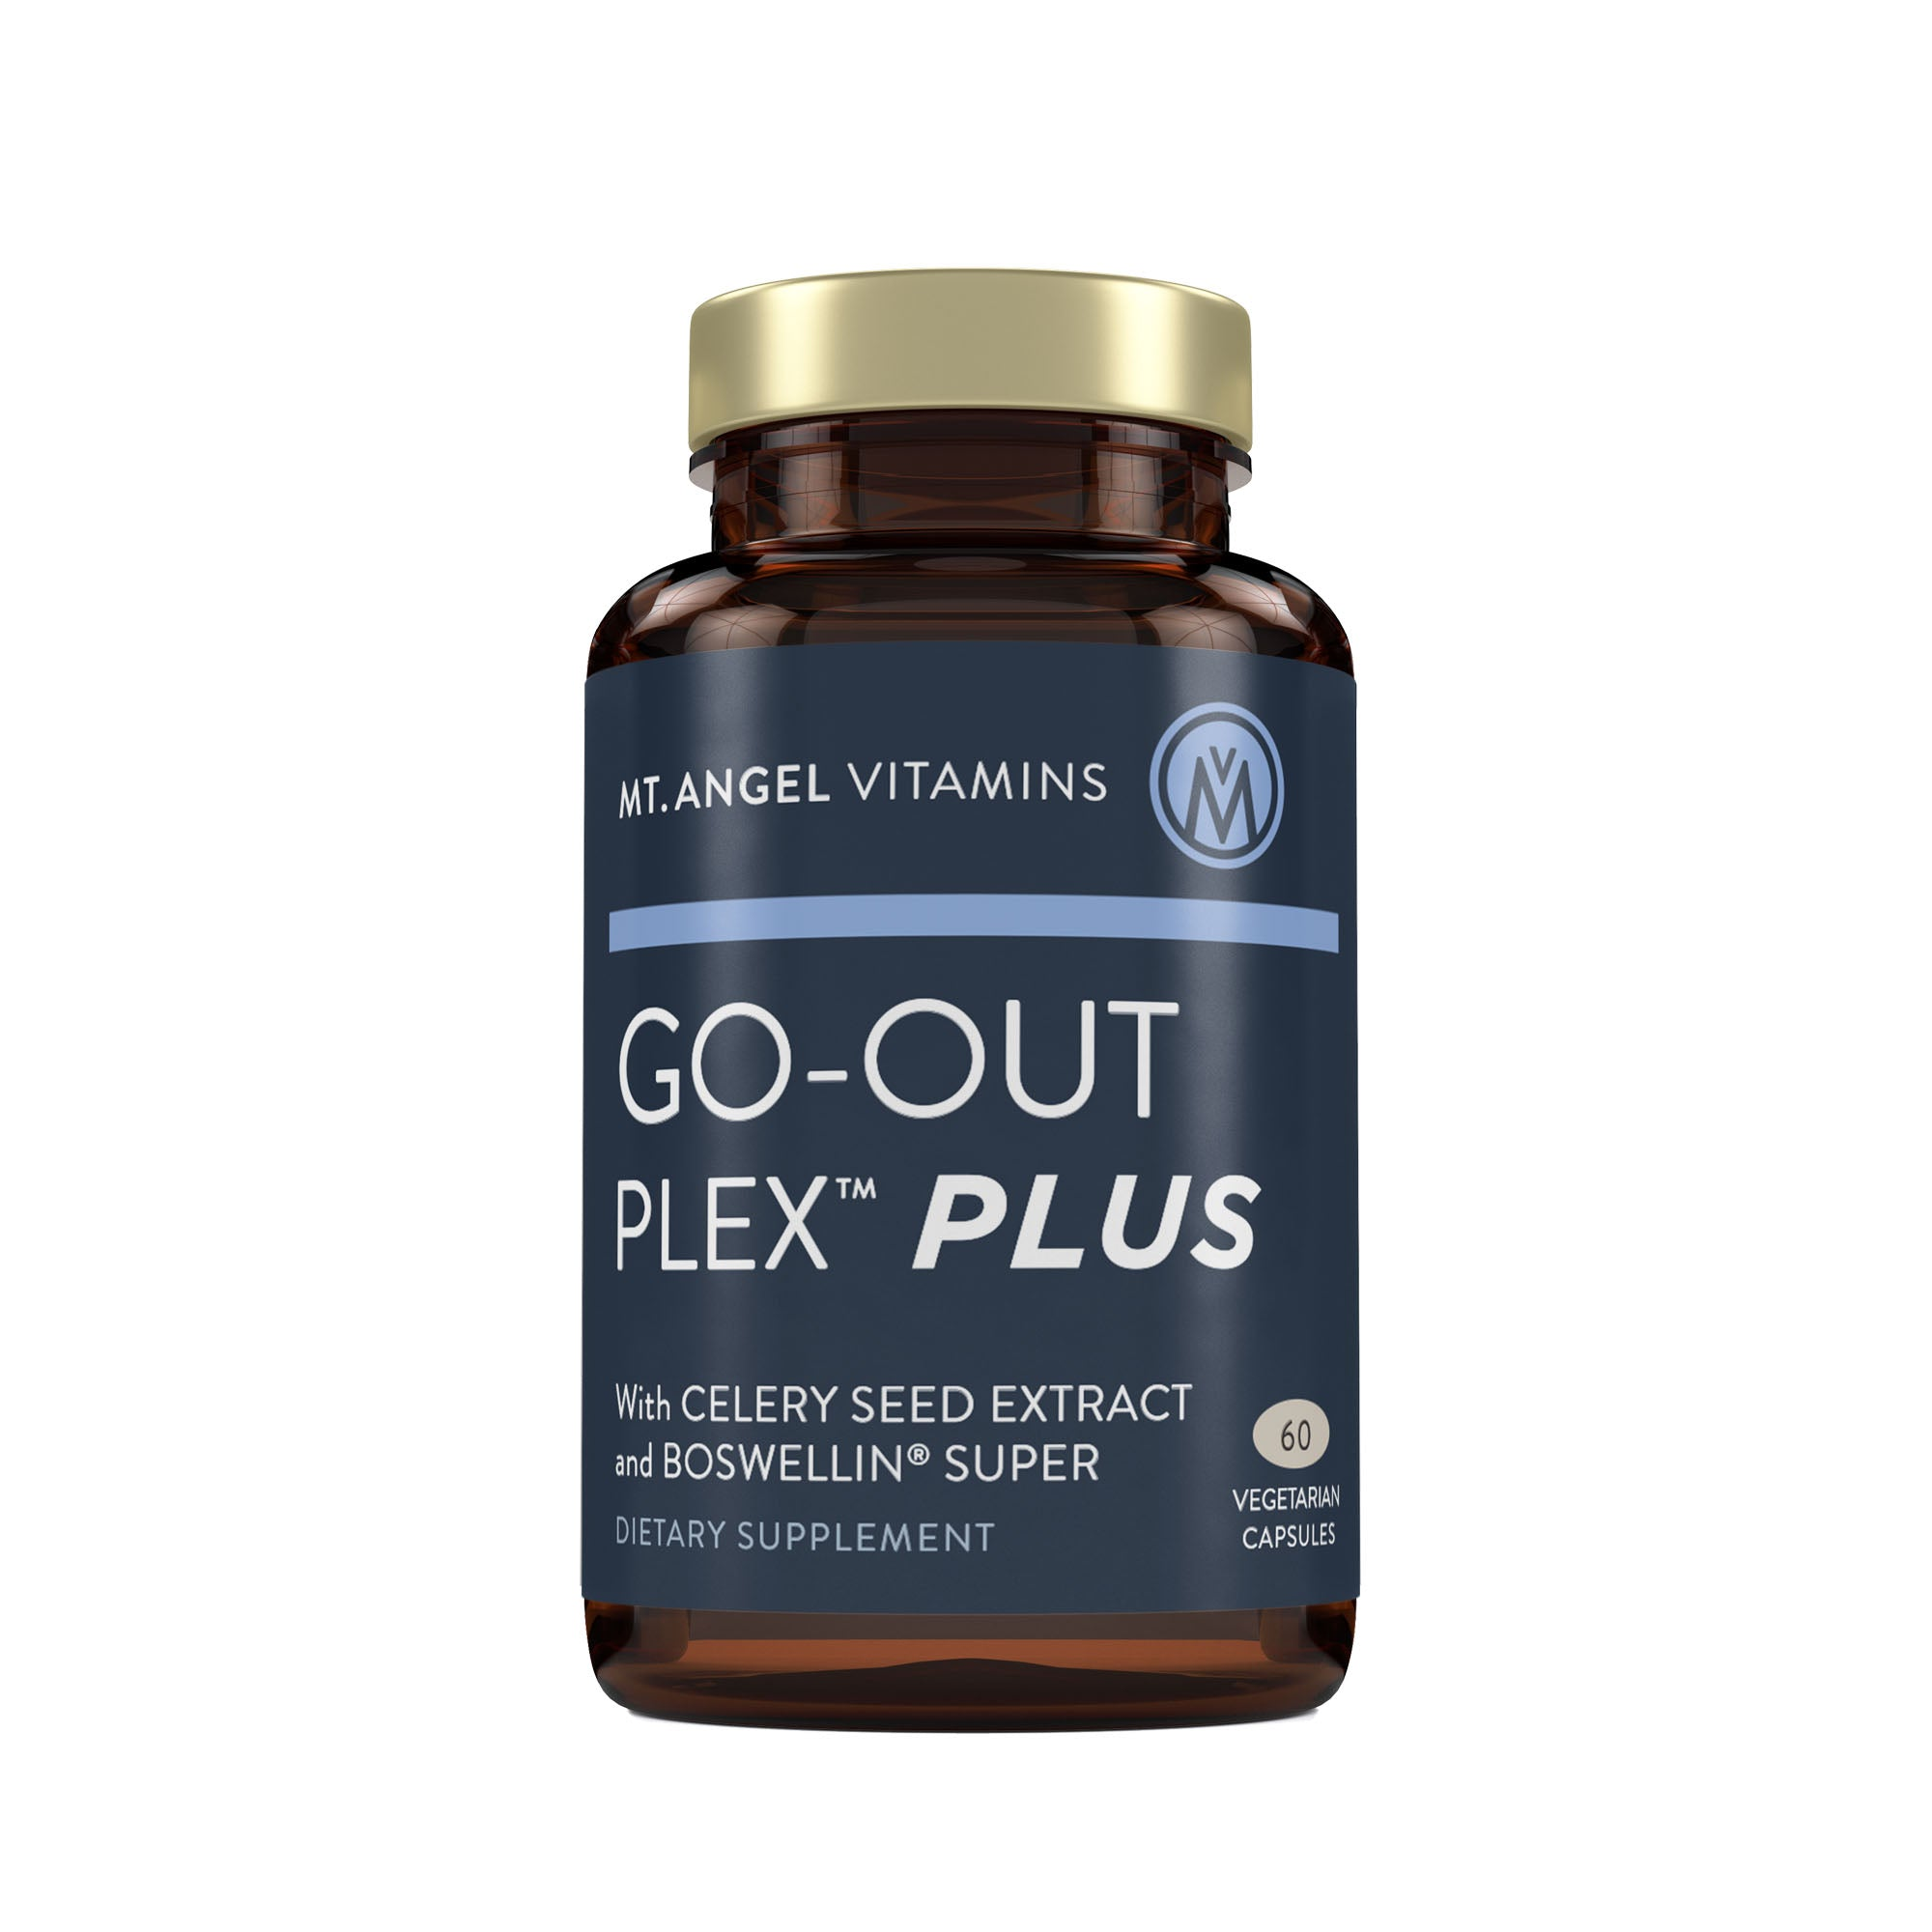 Go-Out Plex Plus - Supports Healthy Uric Acid Levels